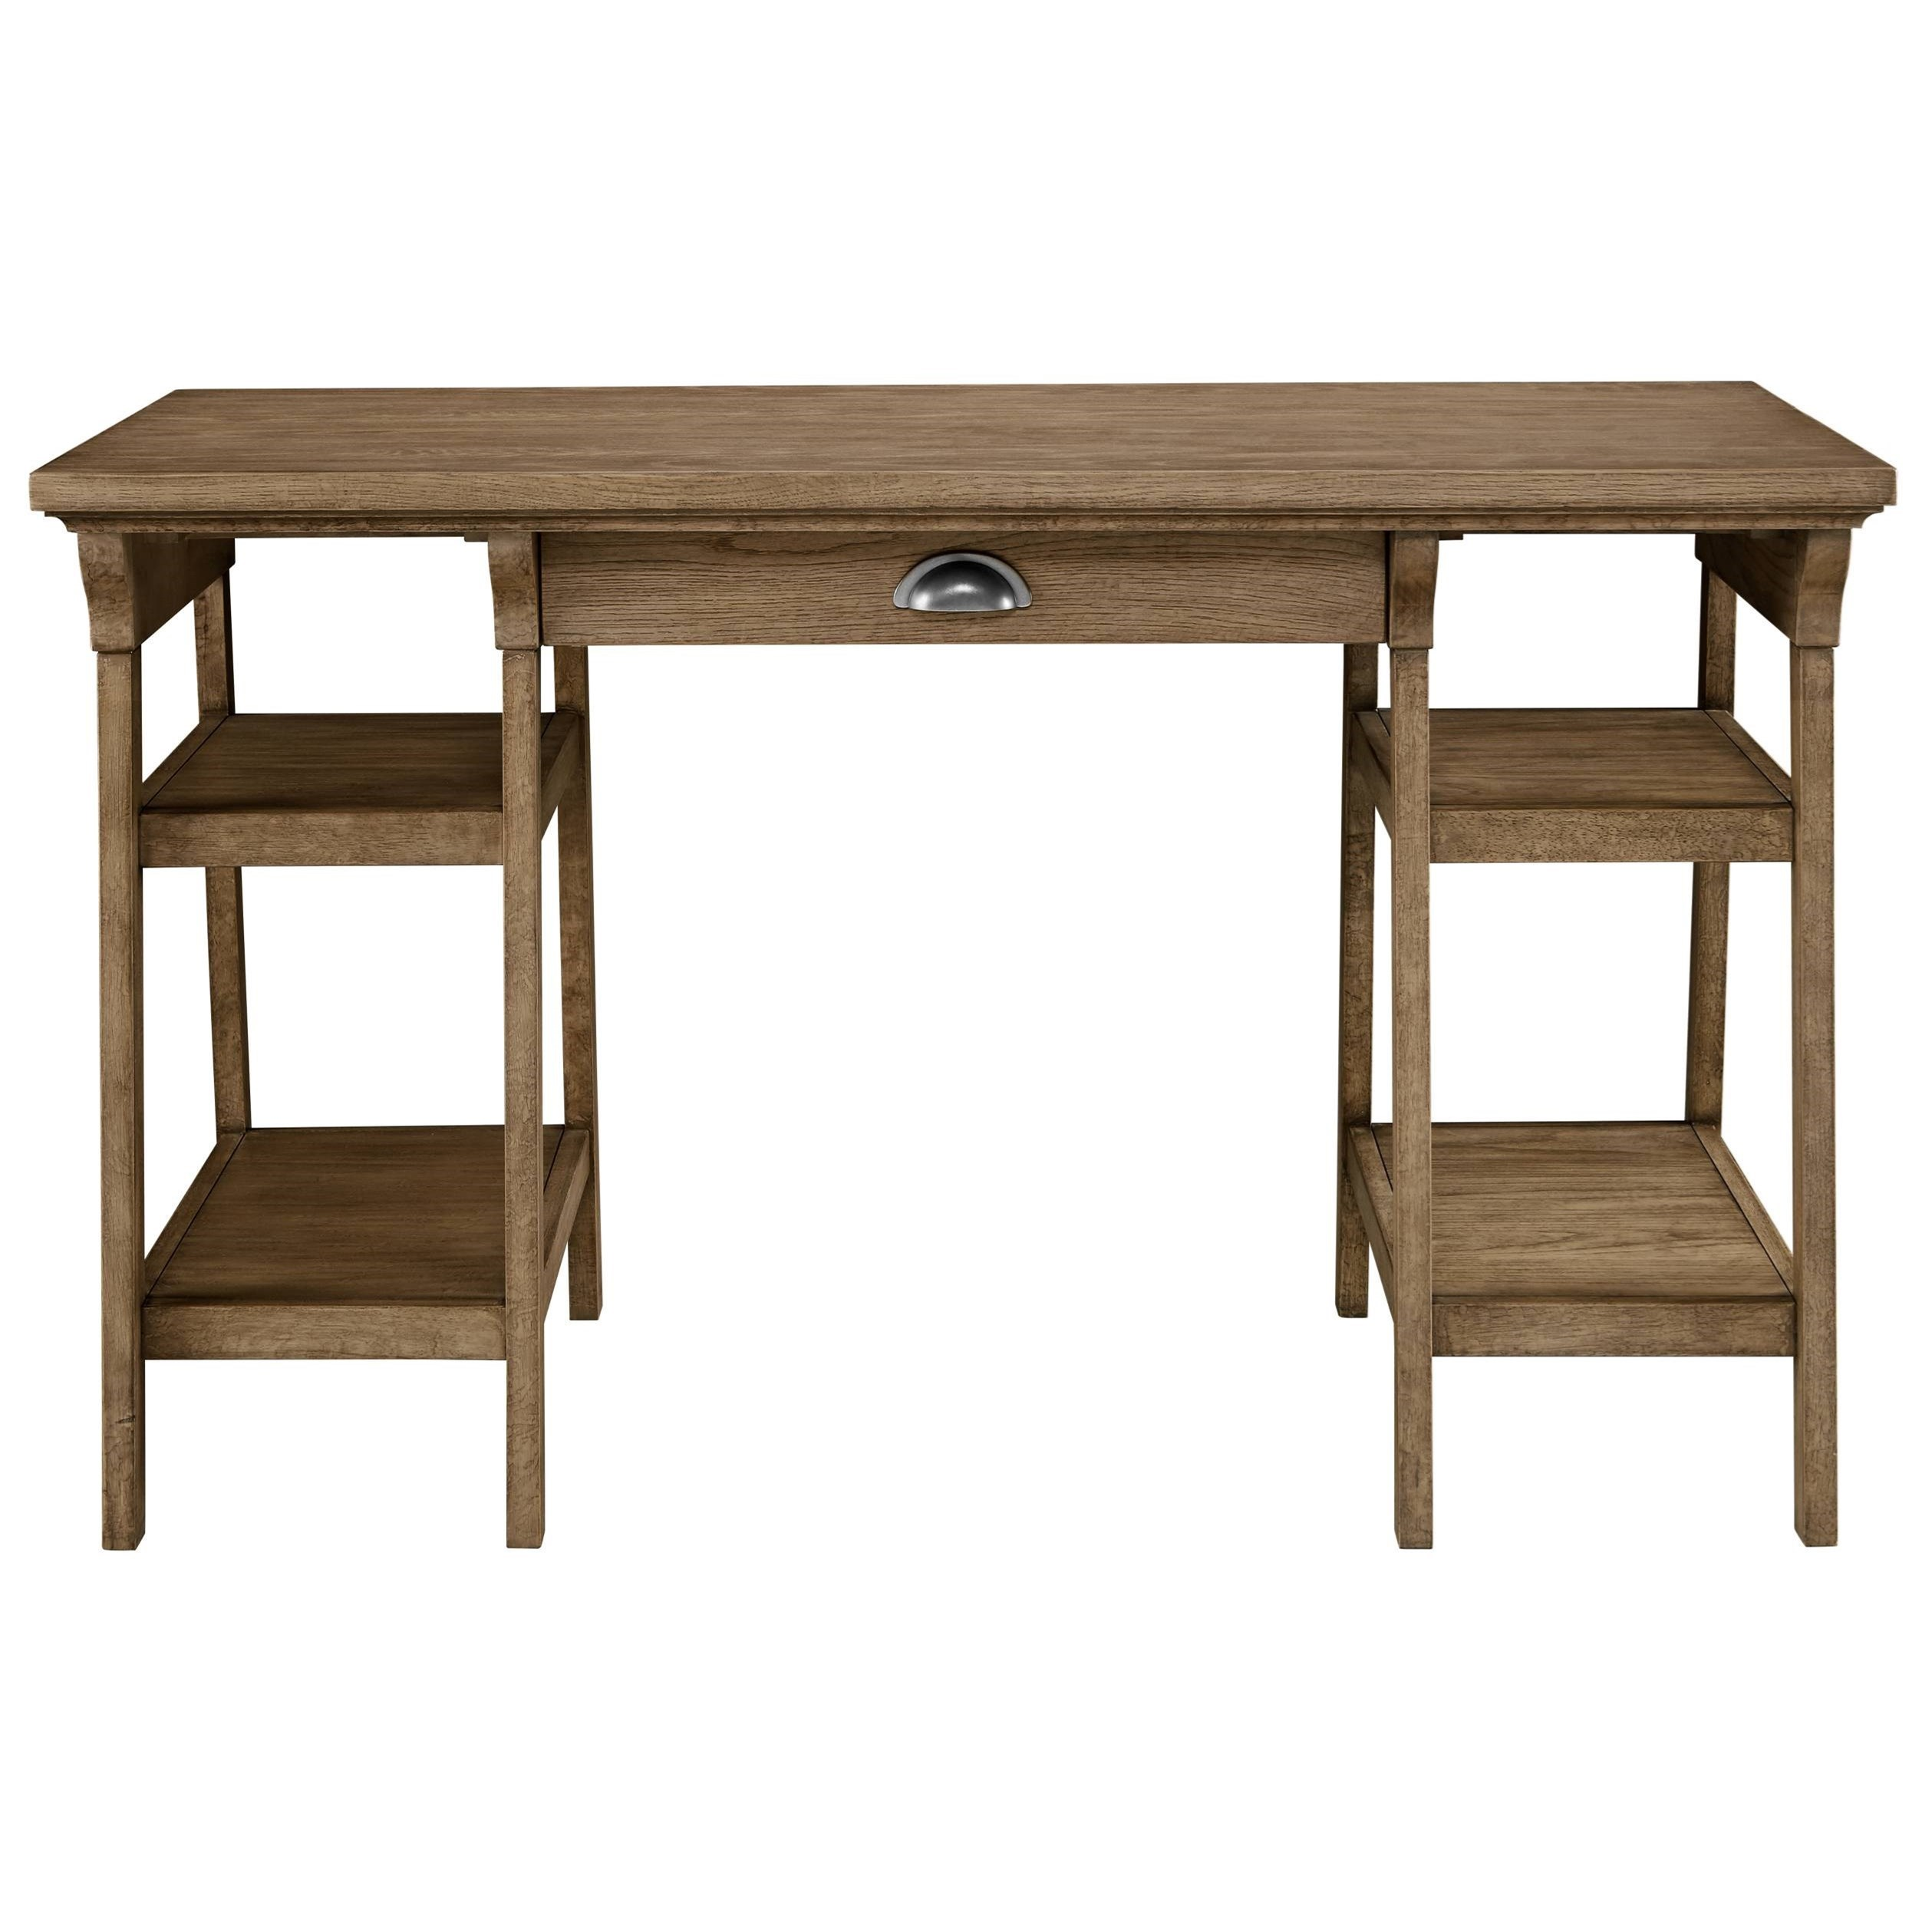 Stone & Leigh Furniture Driftwood Park Desk - Item Number: 536-13-27